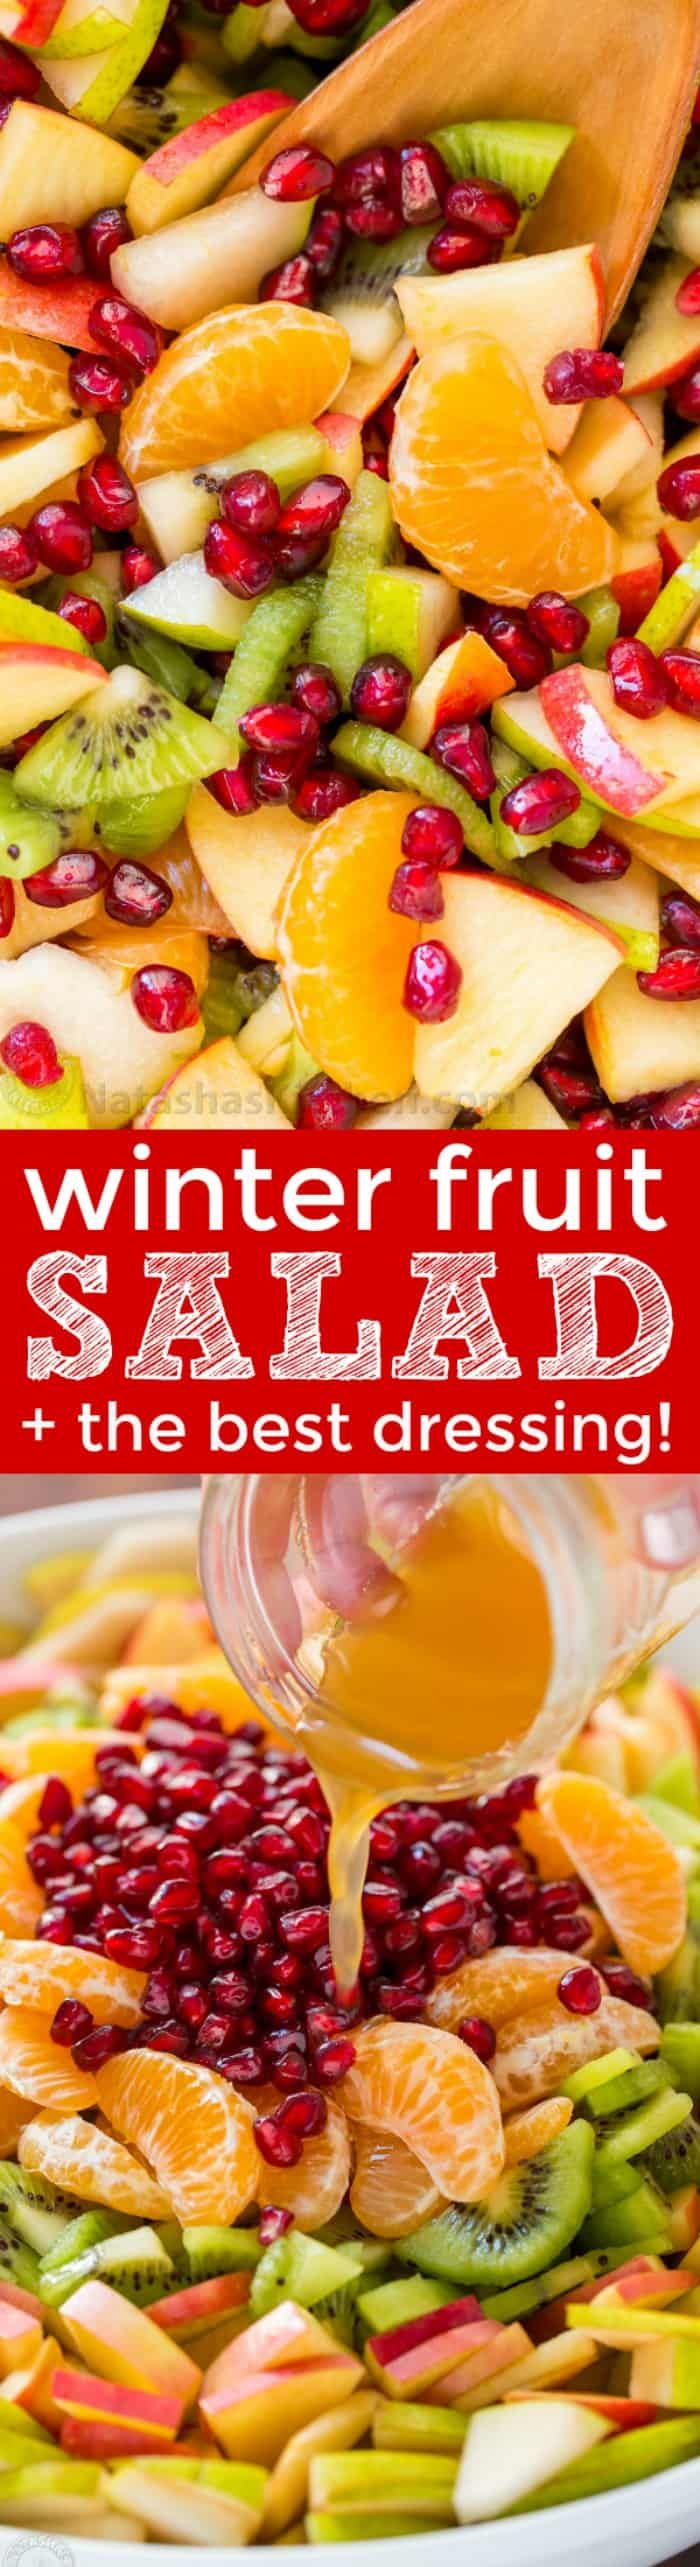 Winter Fruit Salad Is Refreshing And Loaded With The Best